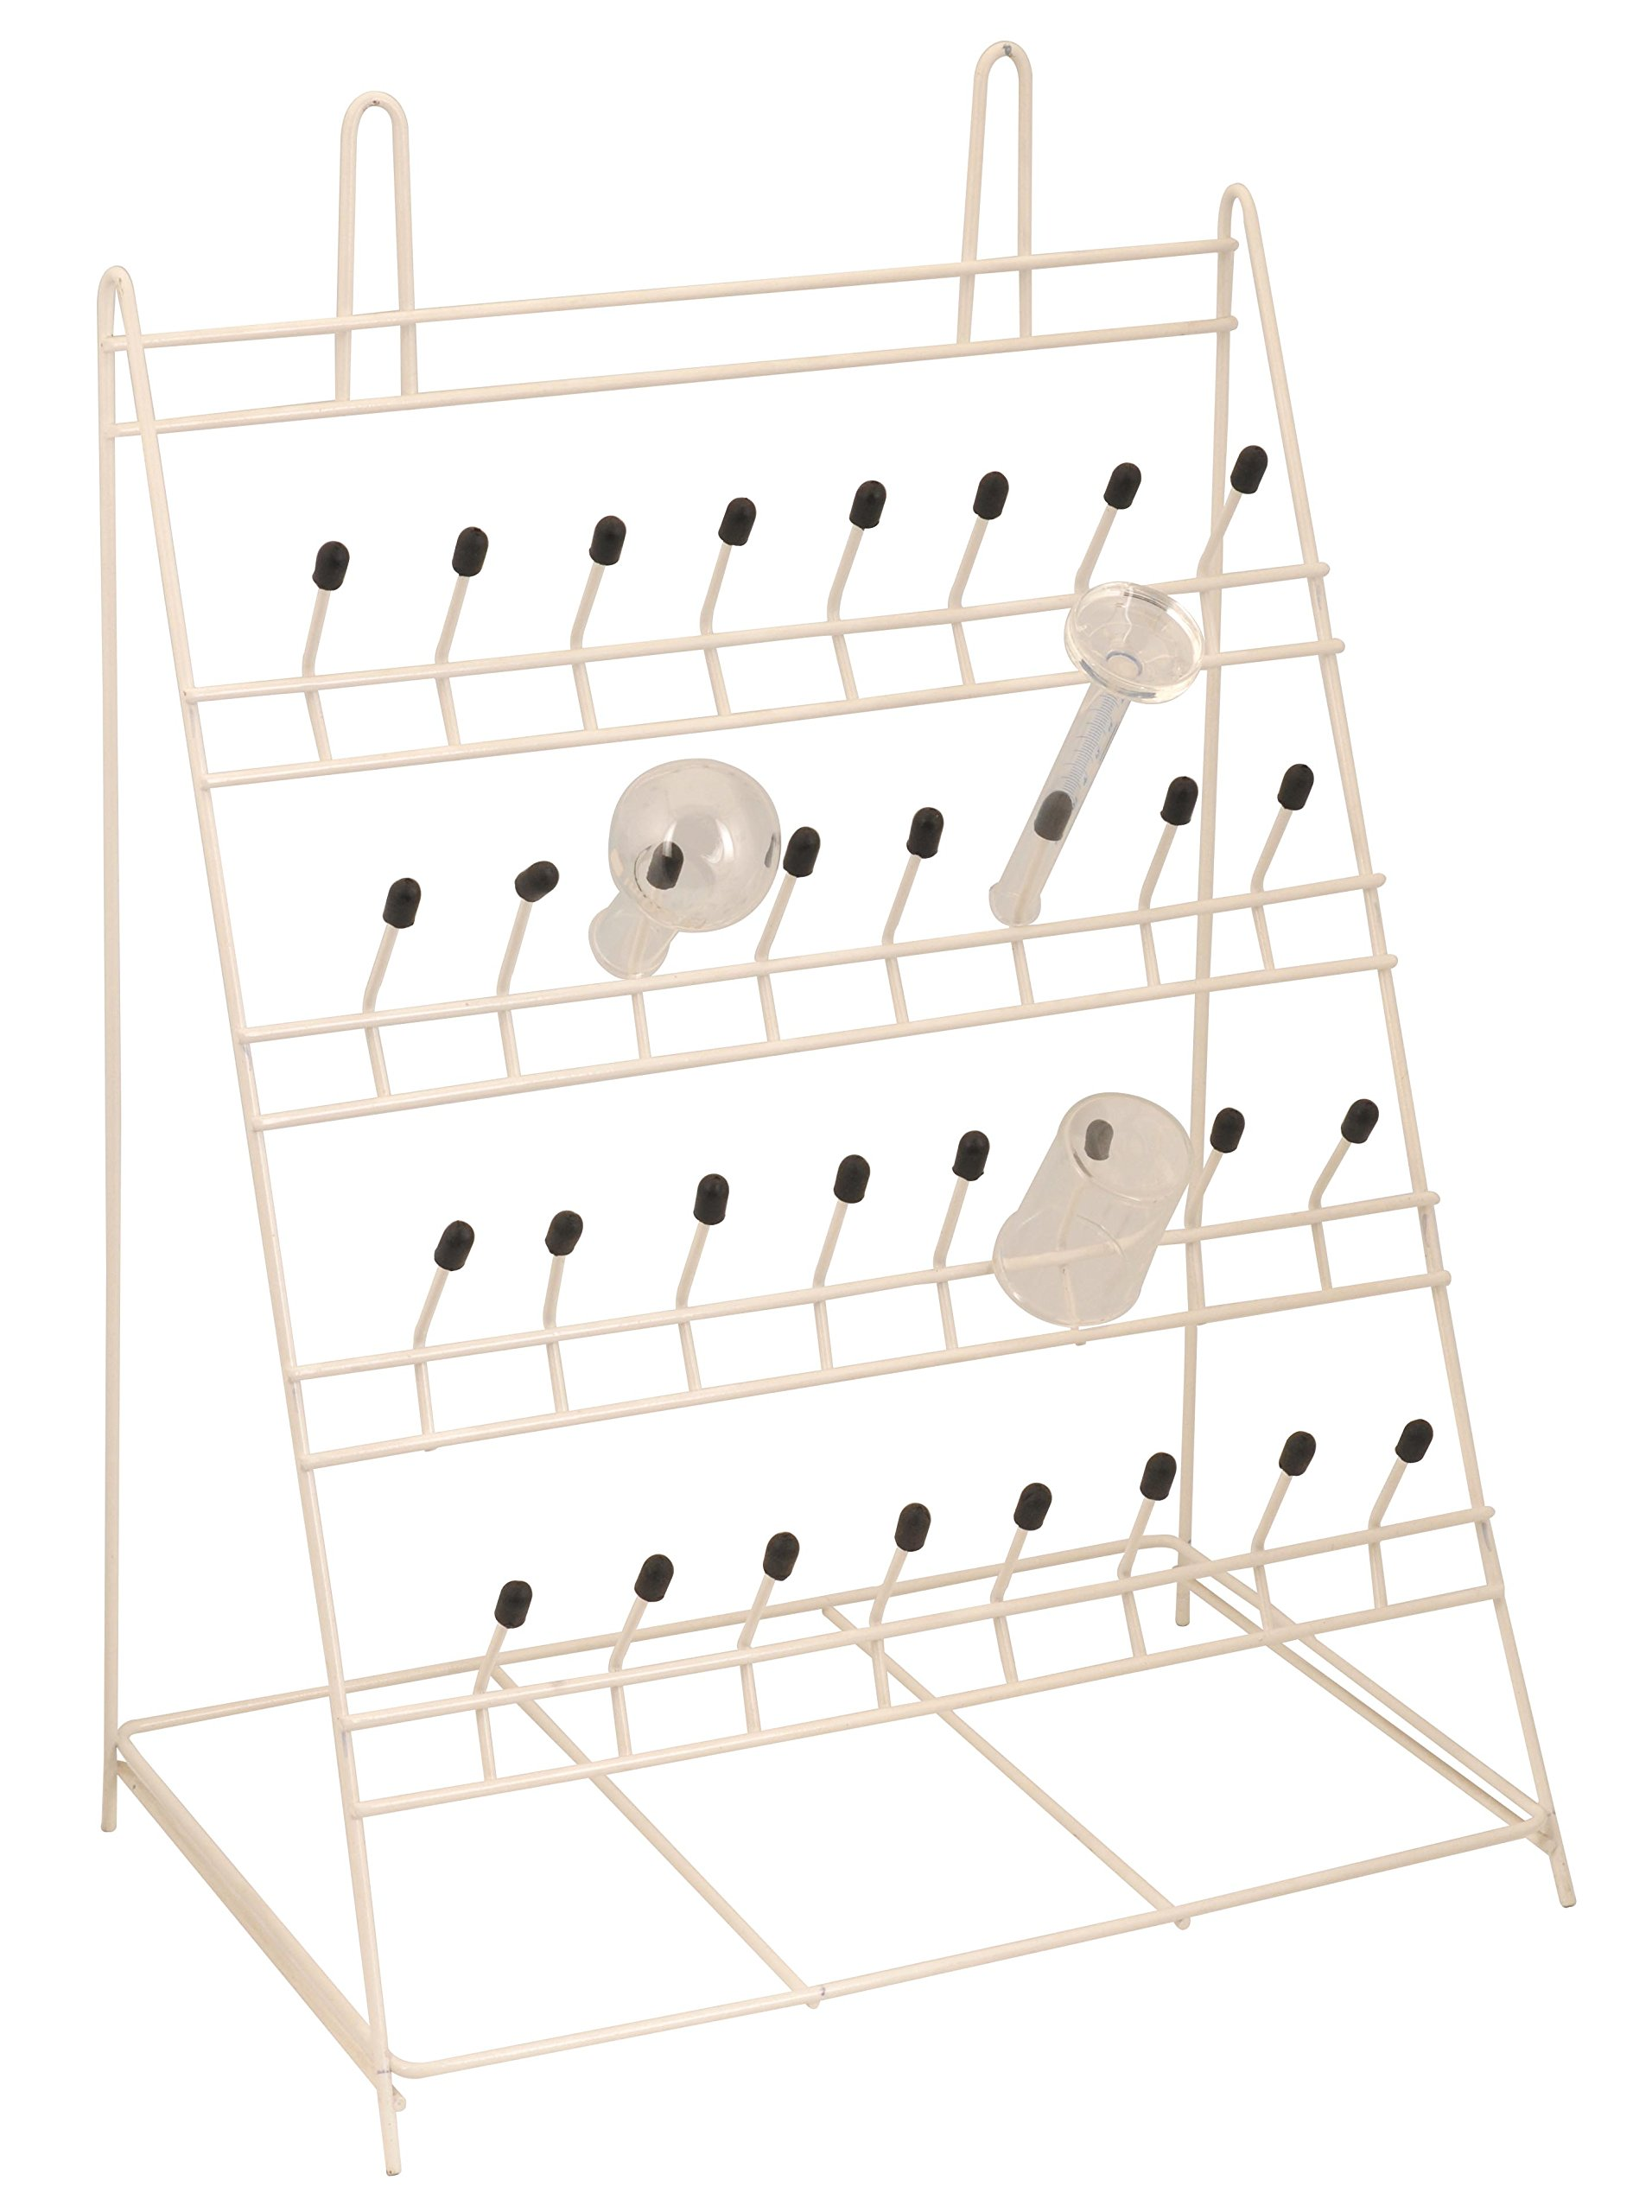 Draining Rack - Metal - 32 Pegs